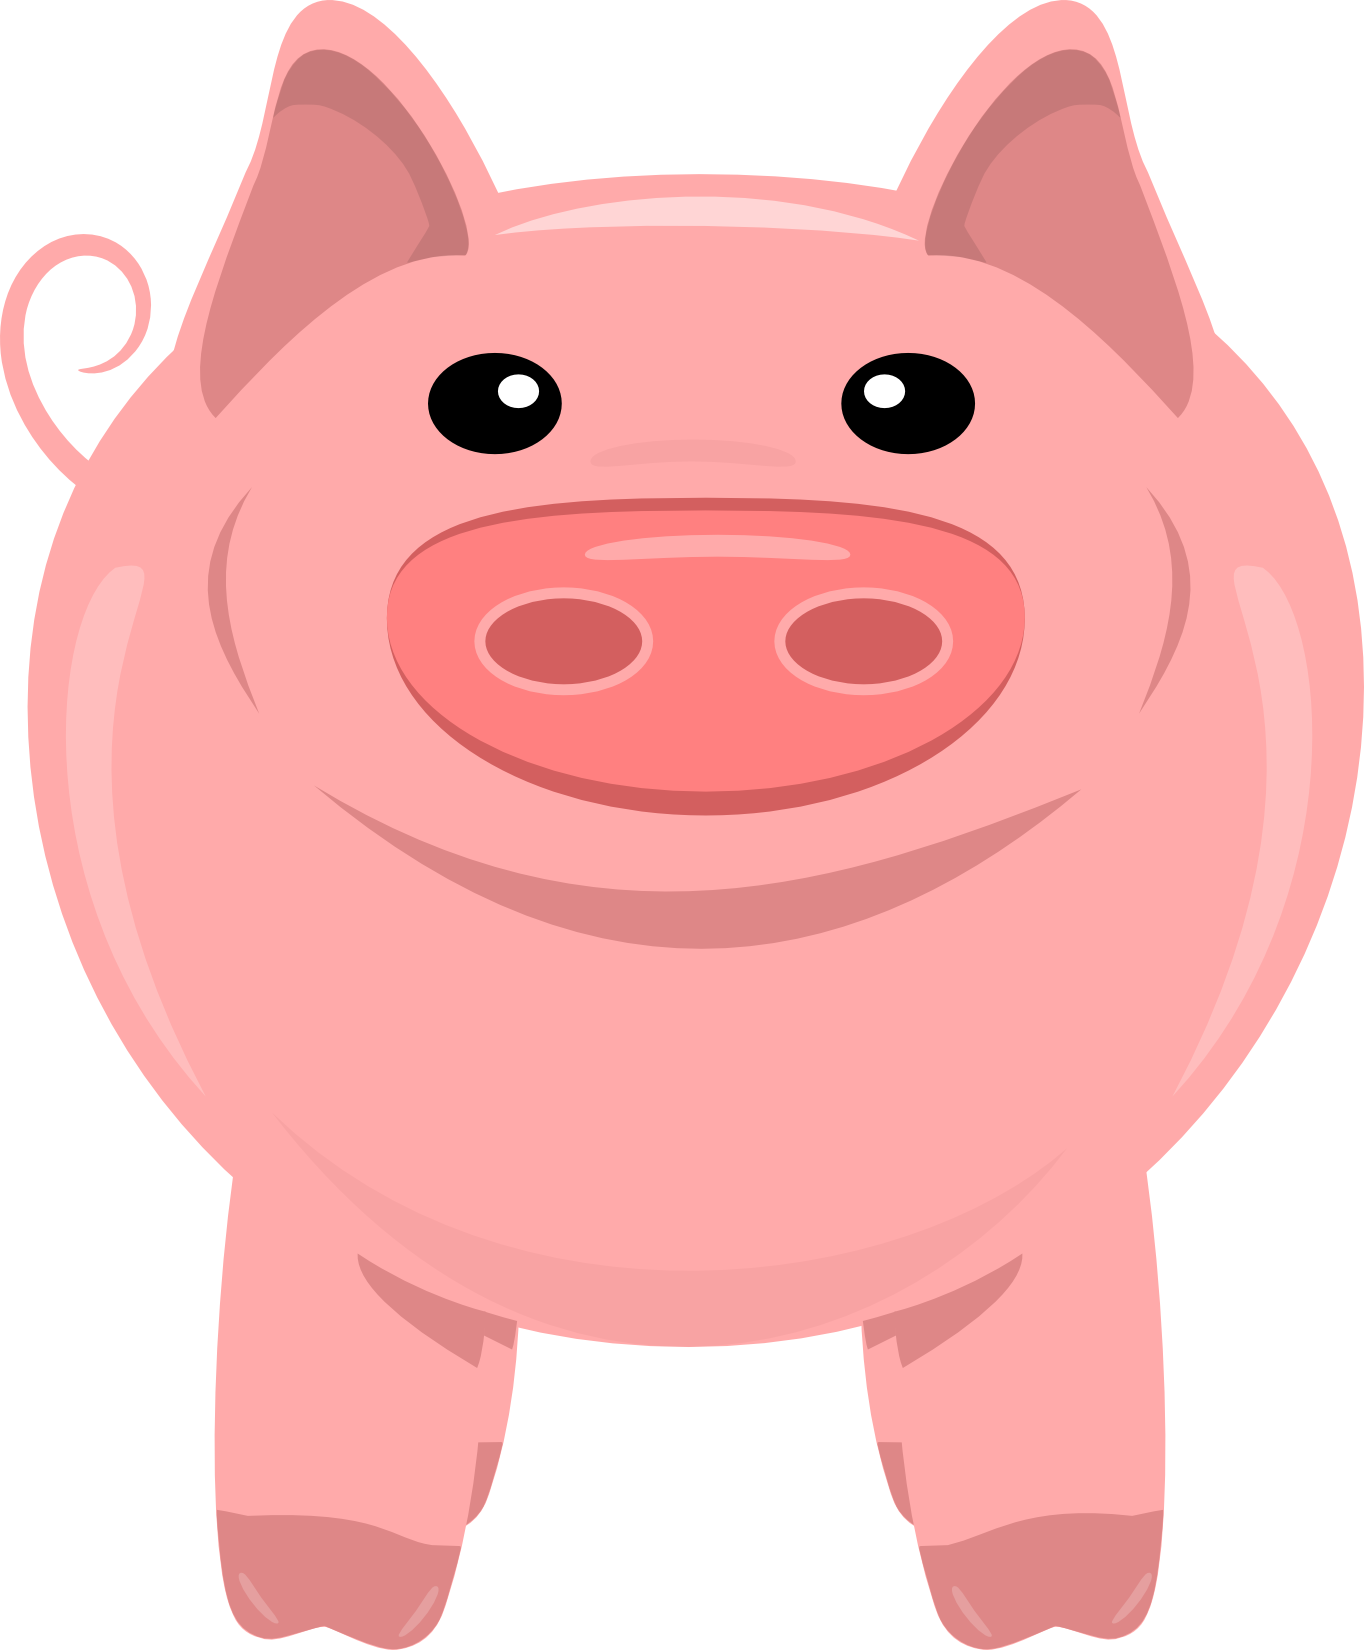 Pig clip art transparent background. Animal clipart pencil and